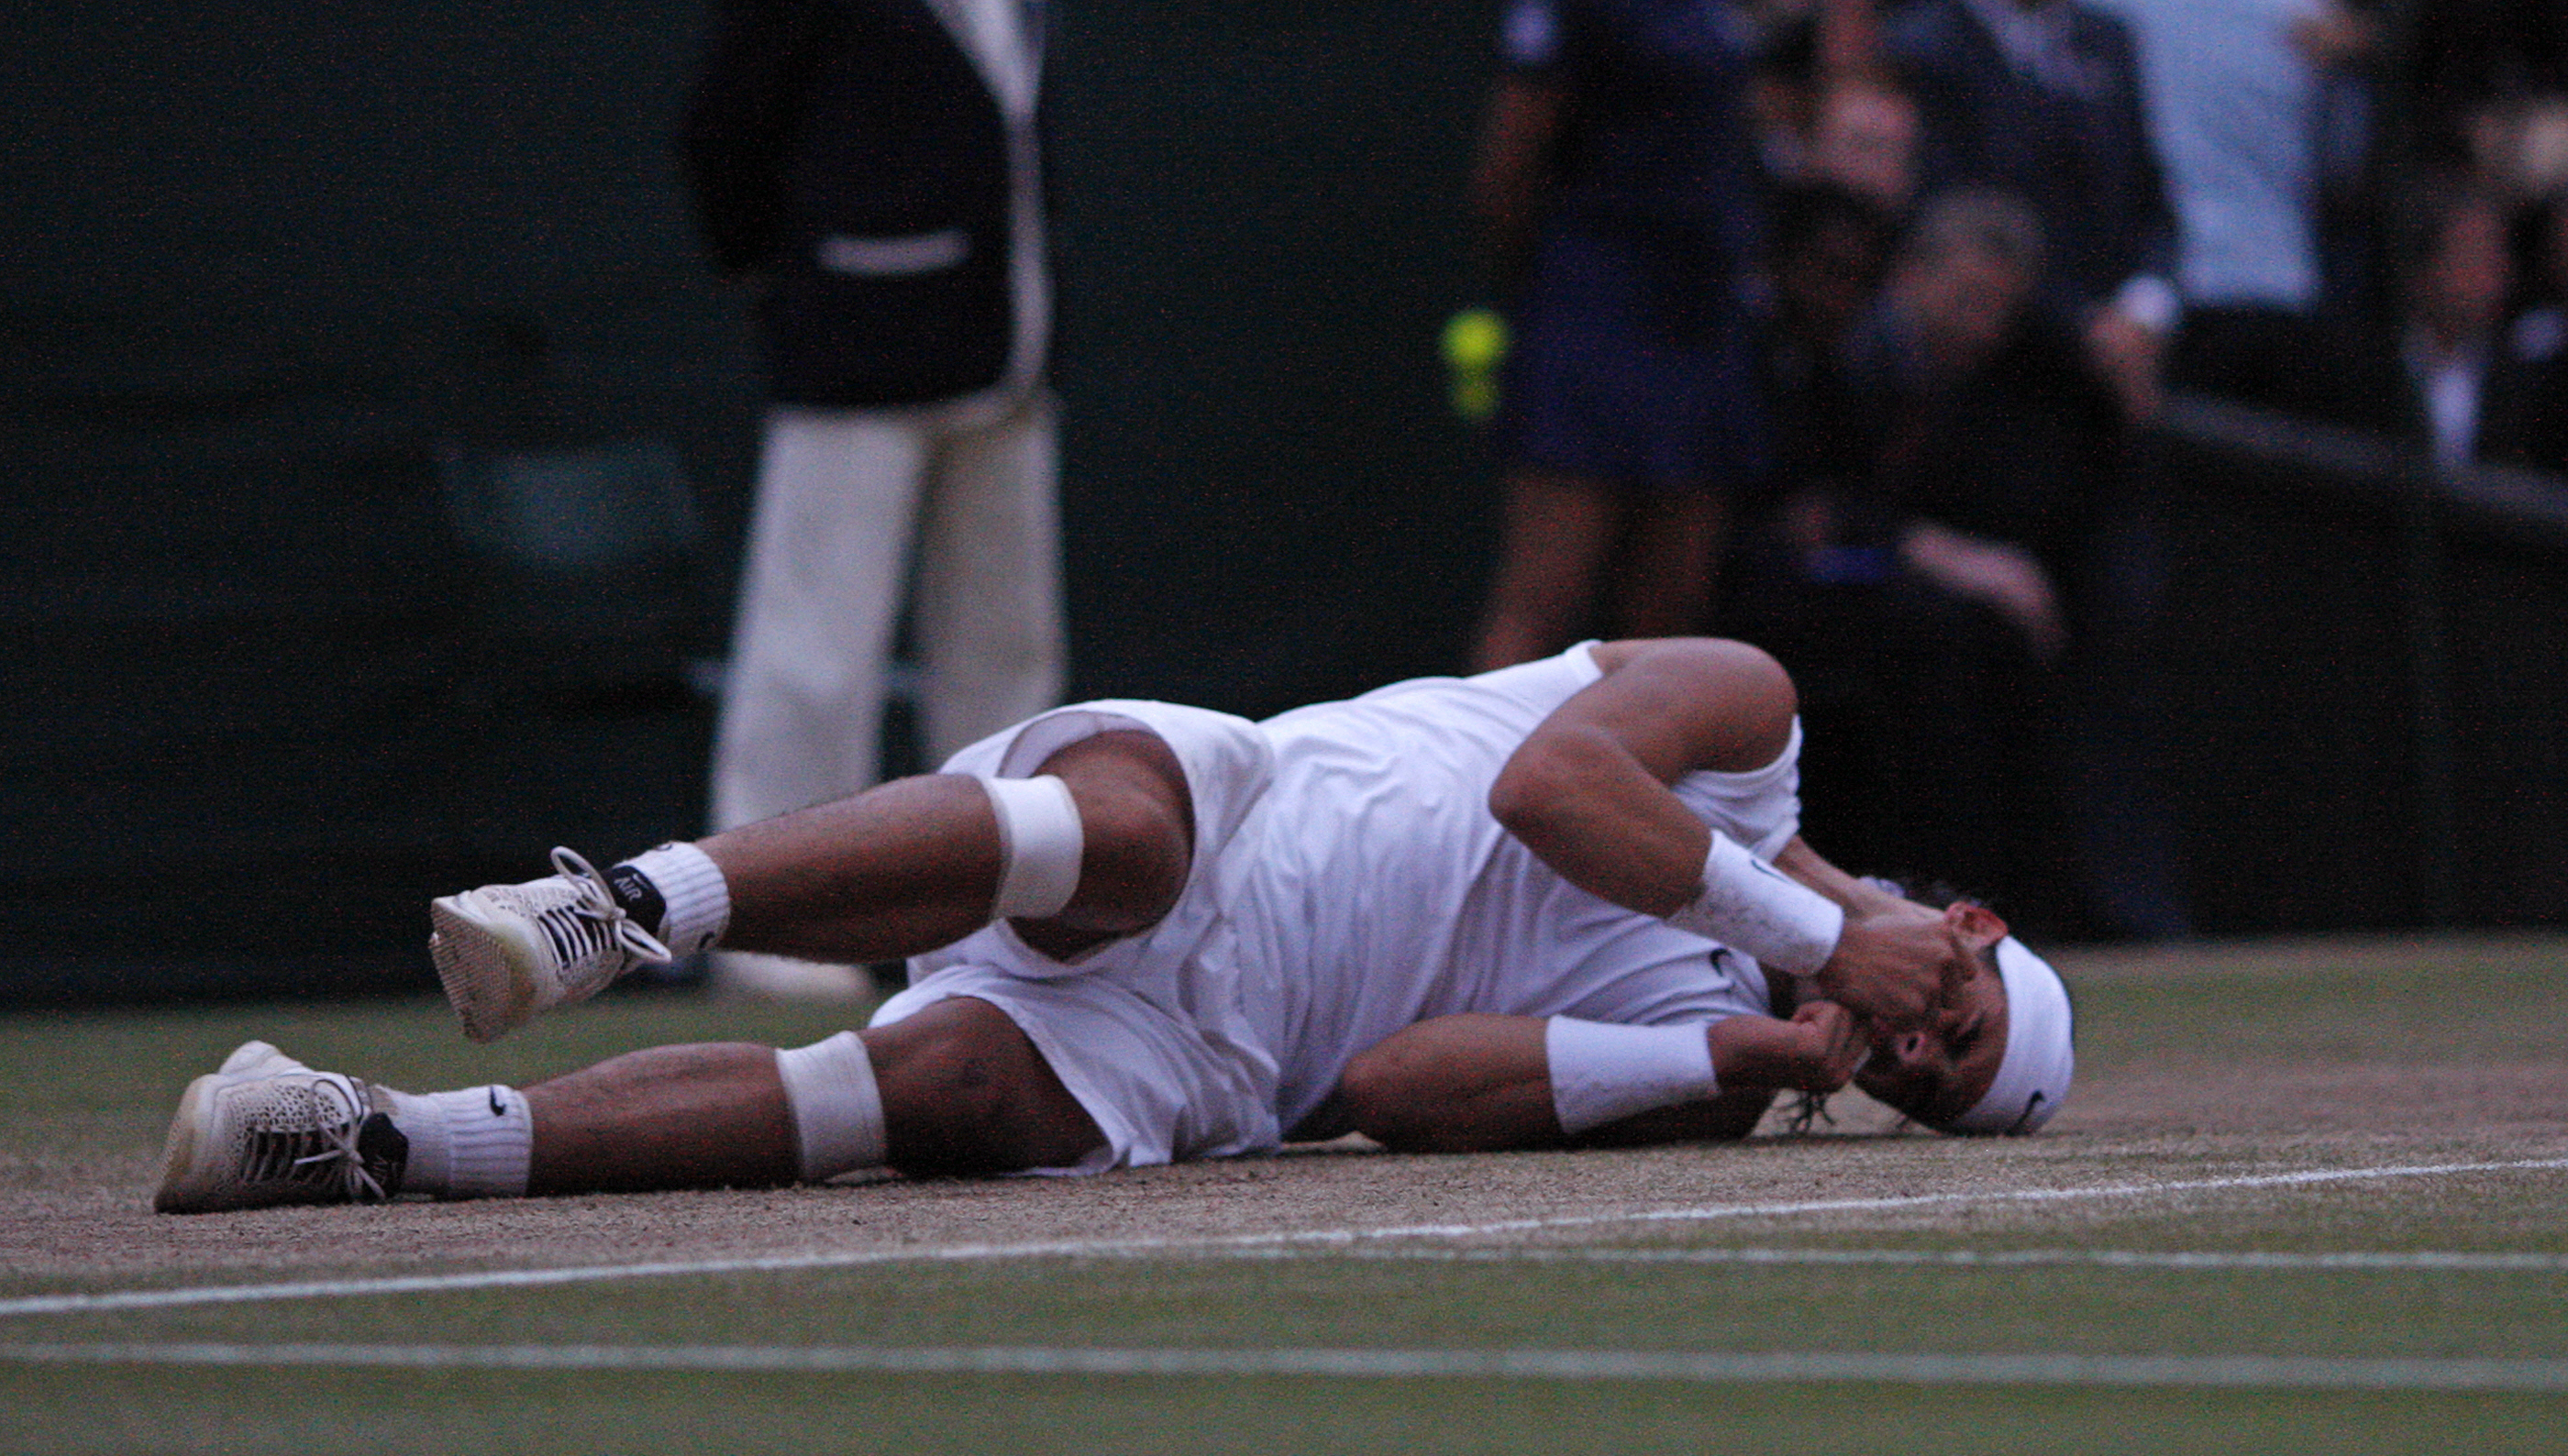 Rafael Nadal collapses to the ground after winning the last point. -AFP